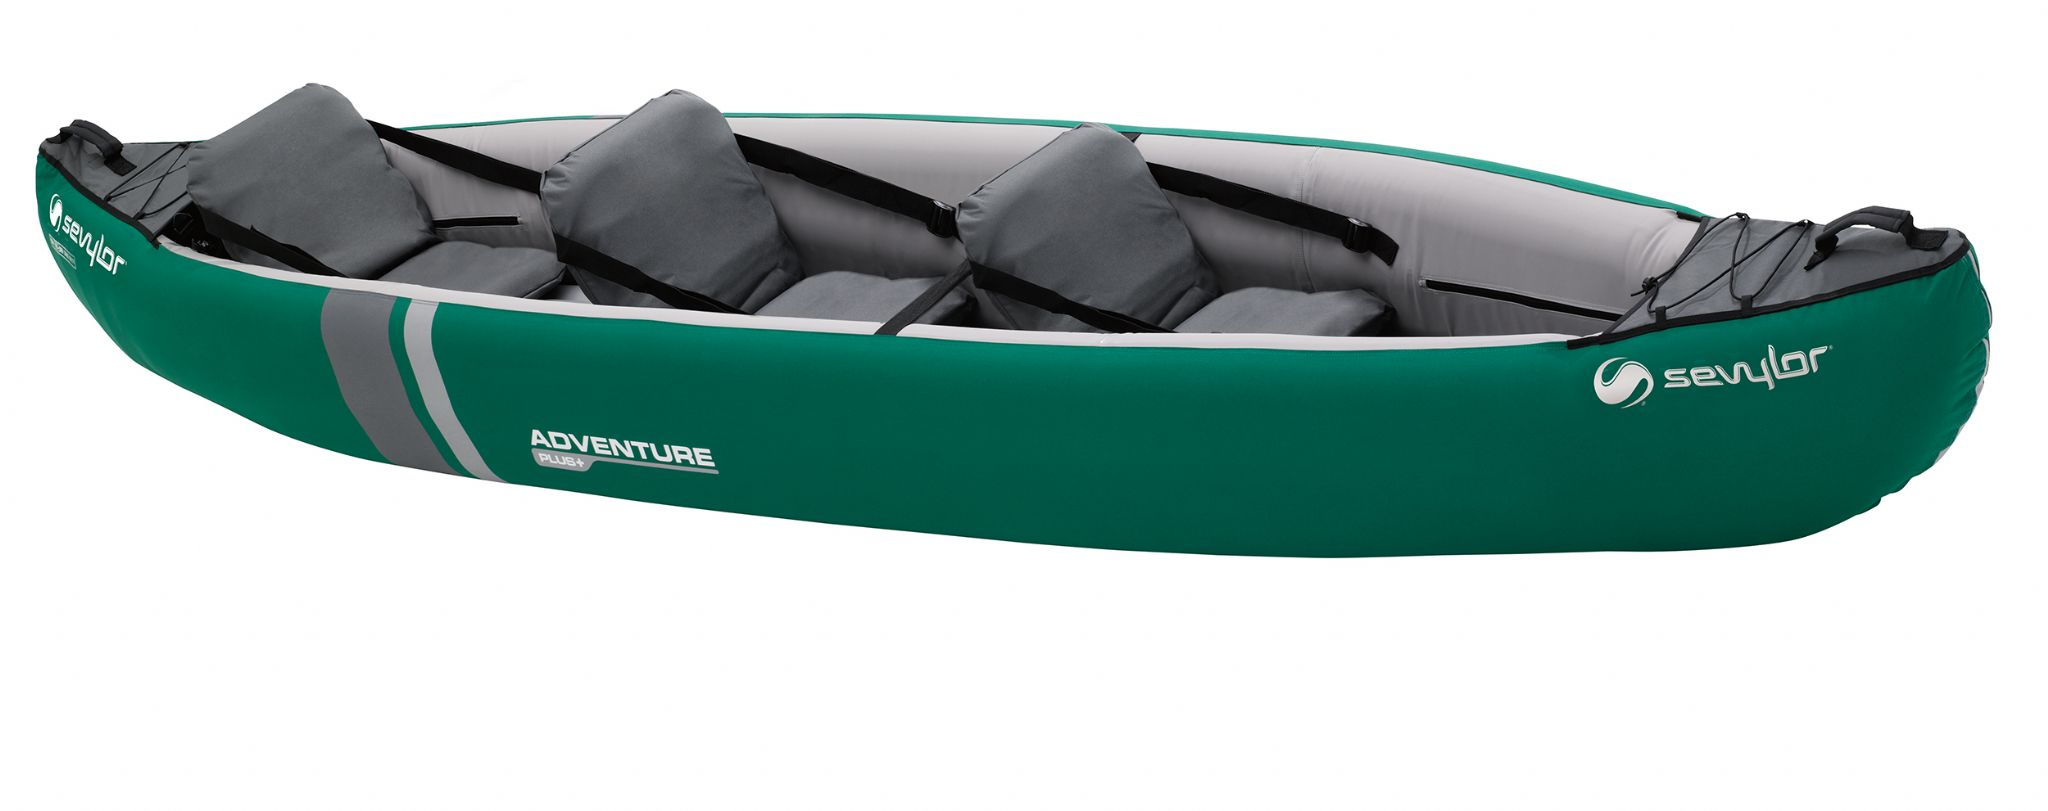 Sevylor Adventure Plus 3 Person Inflatable Kayak Water